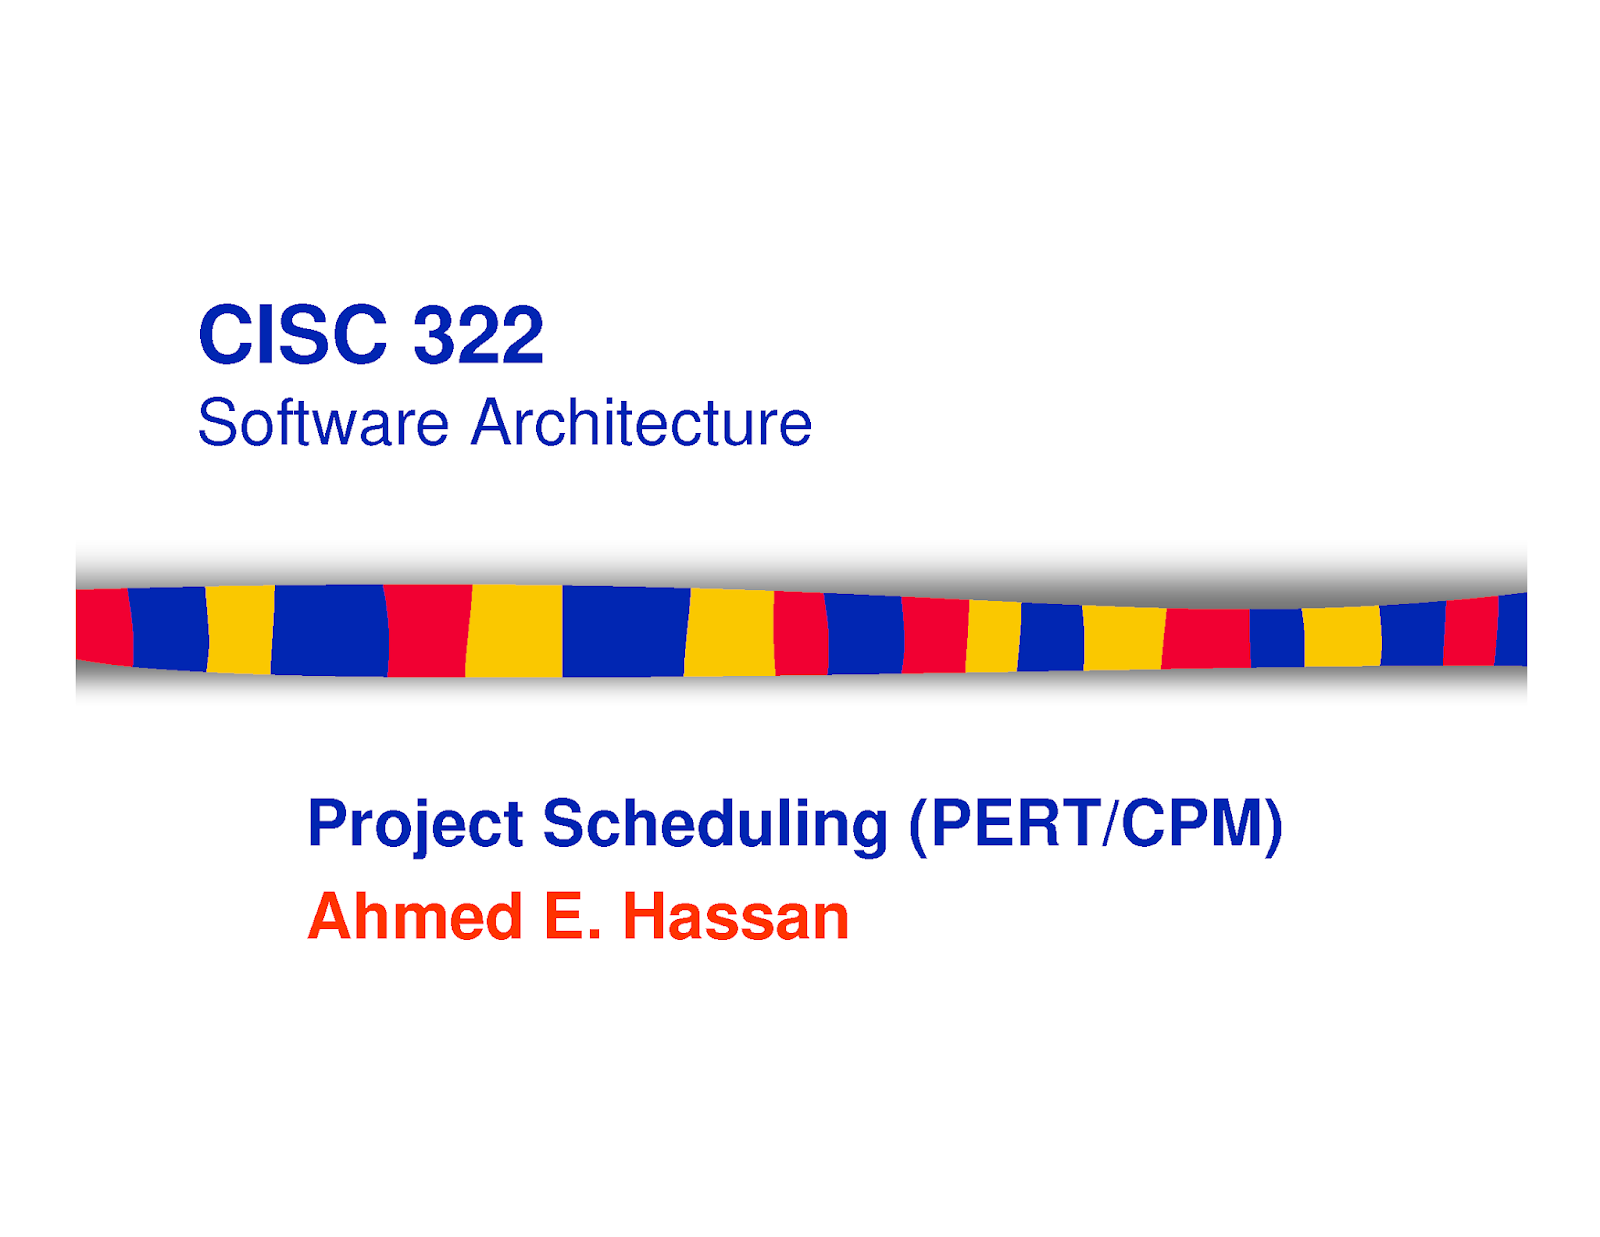 Project Scheduling (PERT/CPM)